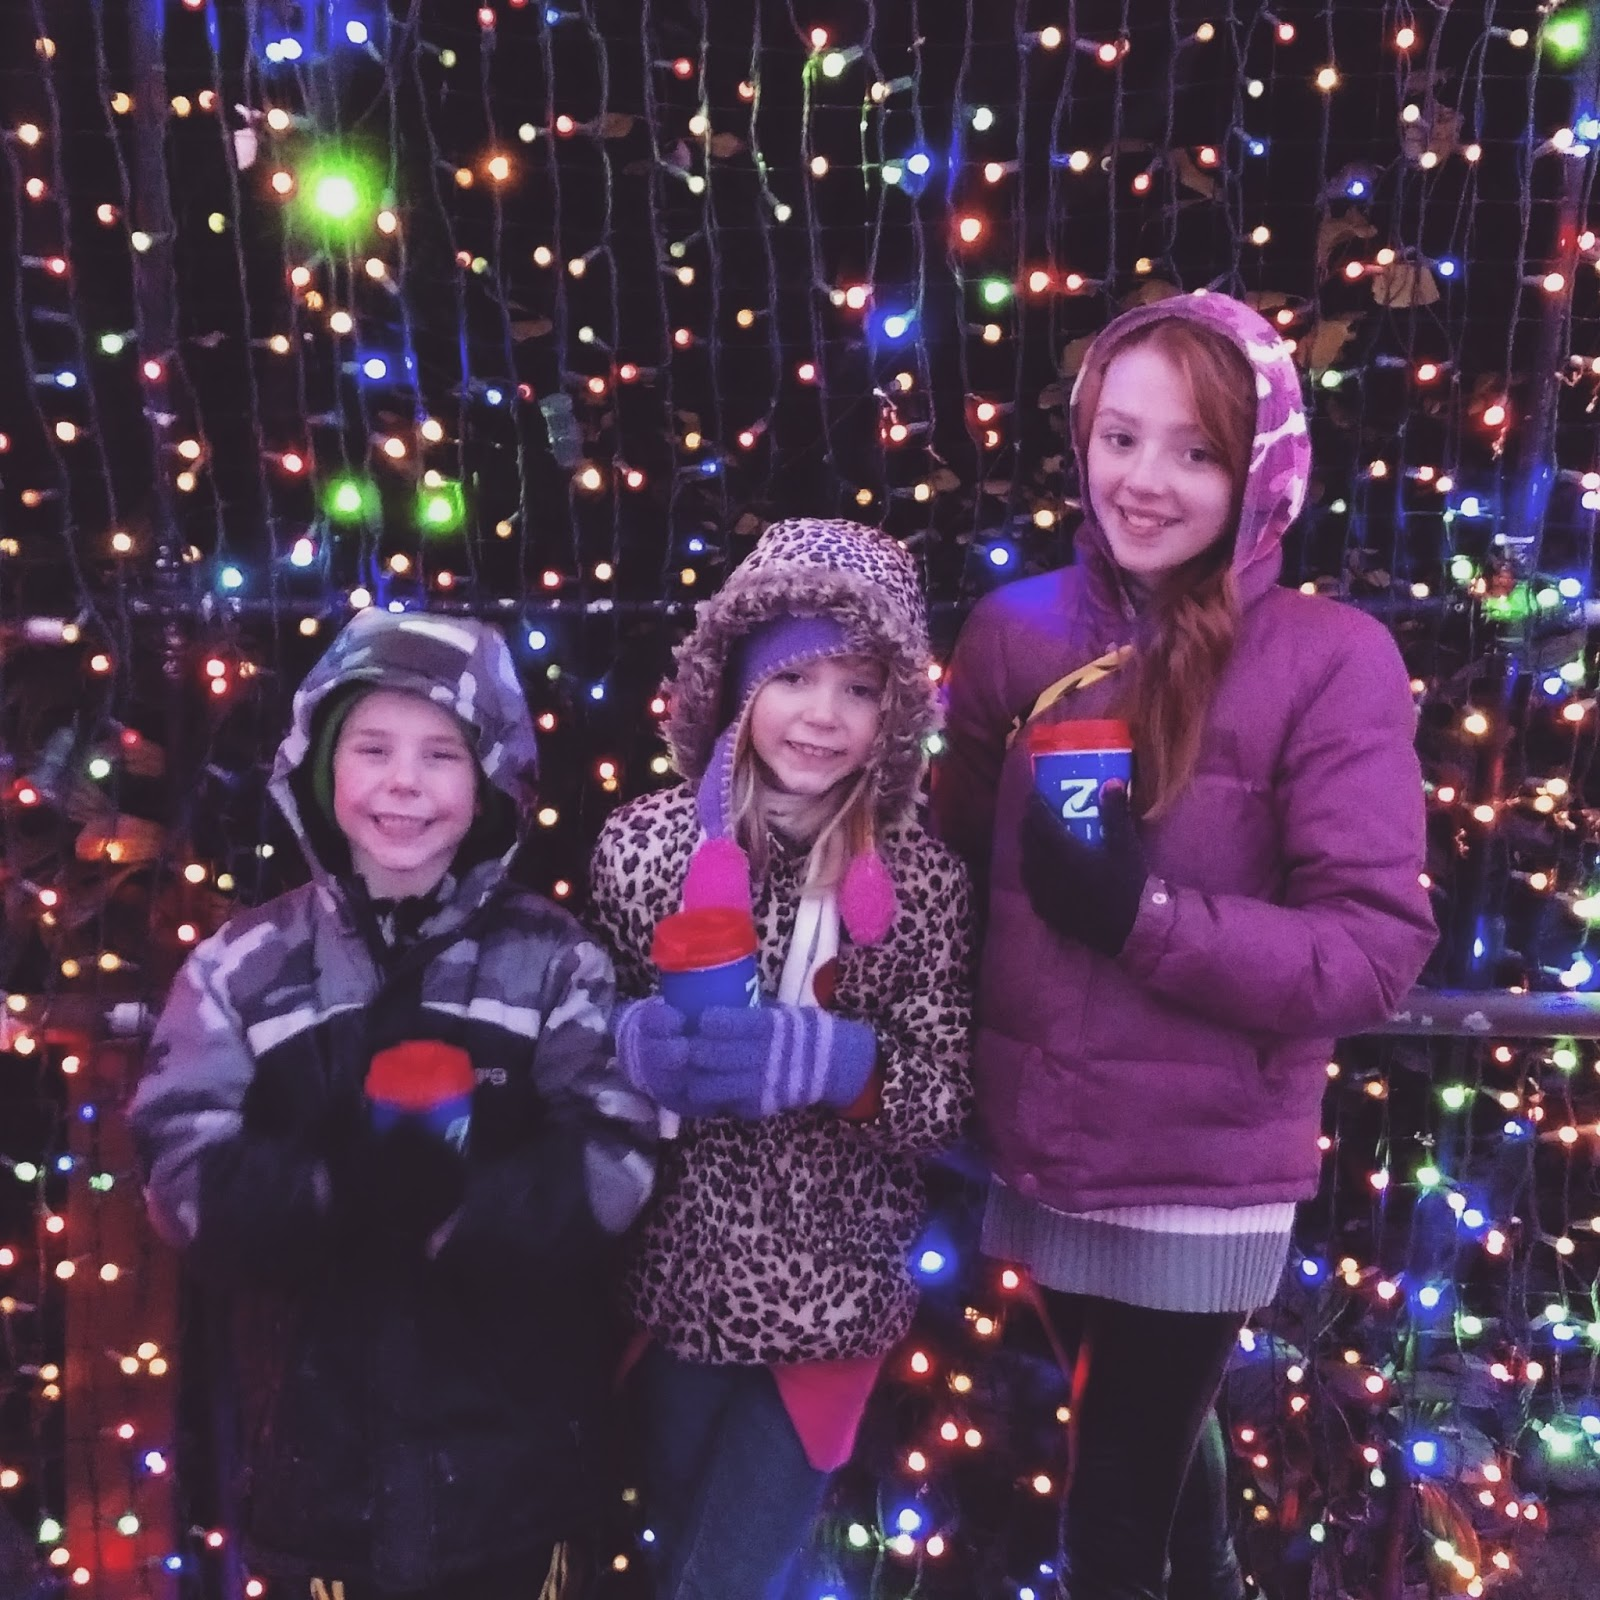 The Oregon Zoo Has Provided Me With 4 Additional Tickets To Visit Their  Annual Holiday Event Zoolights.